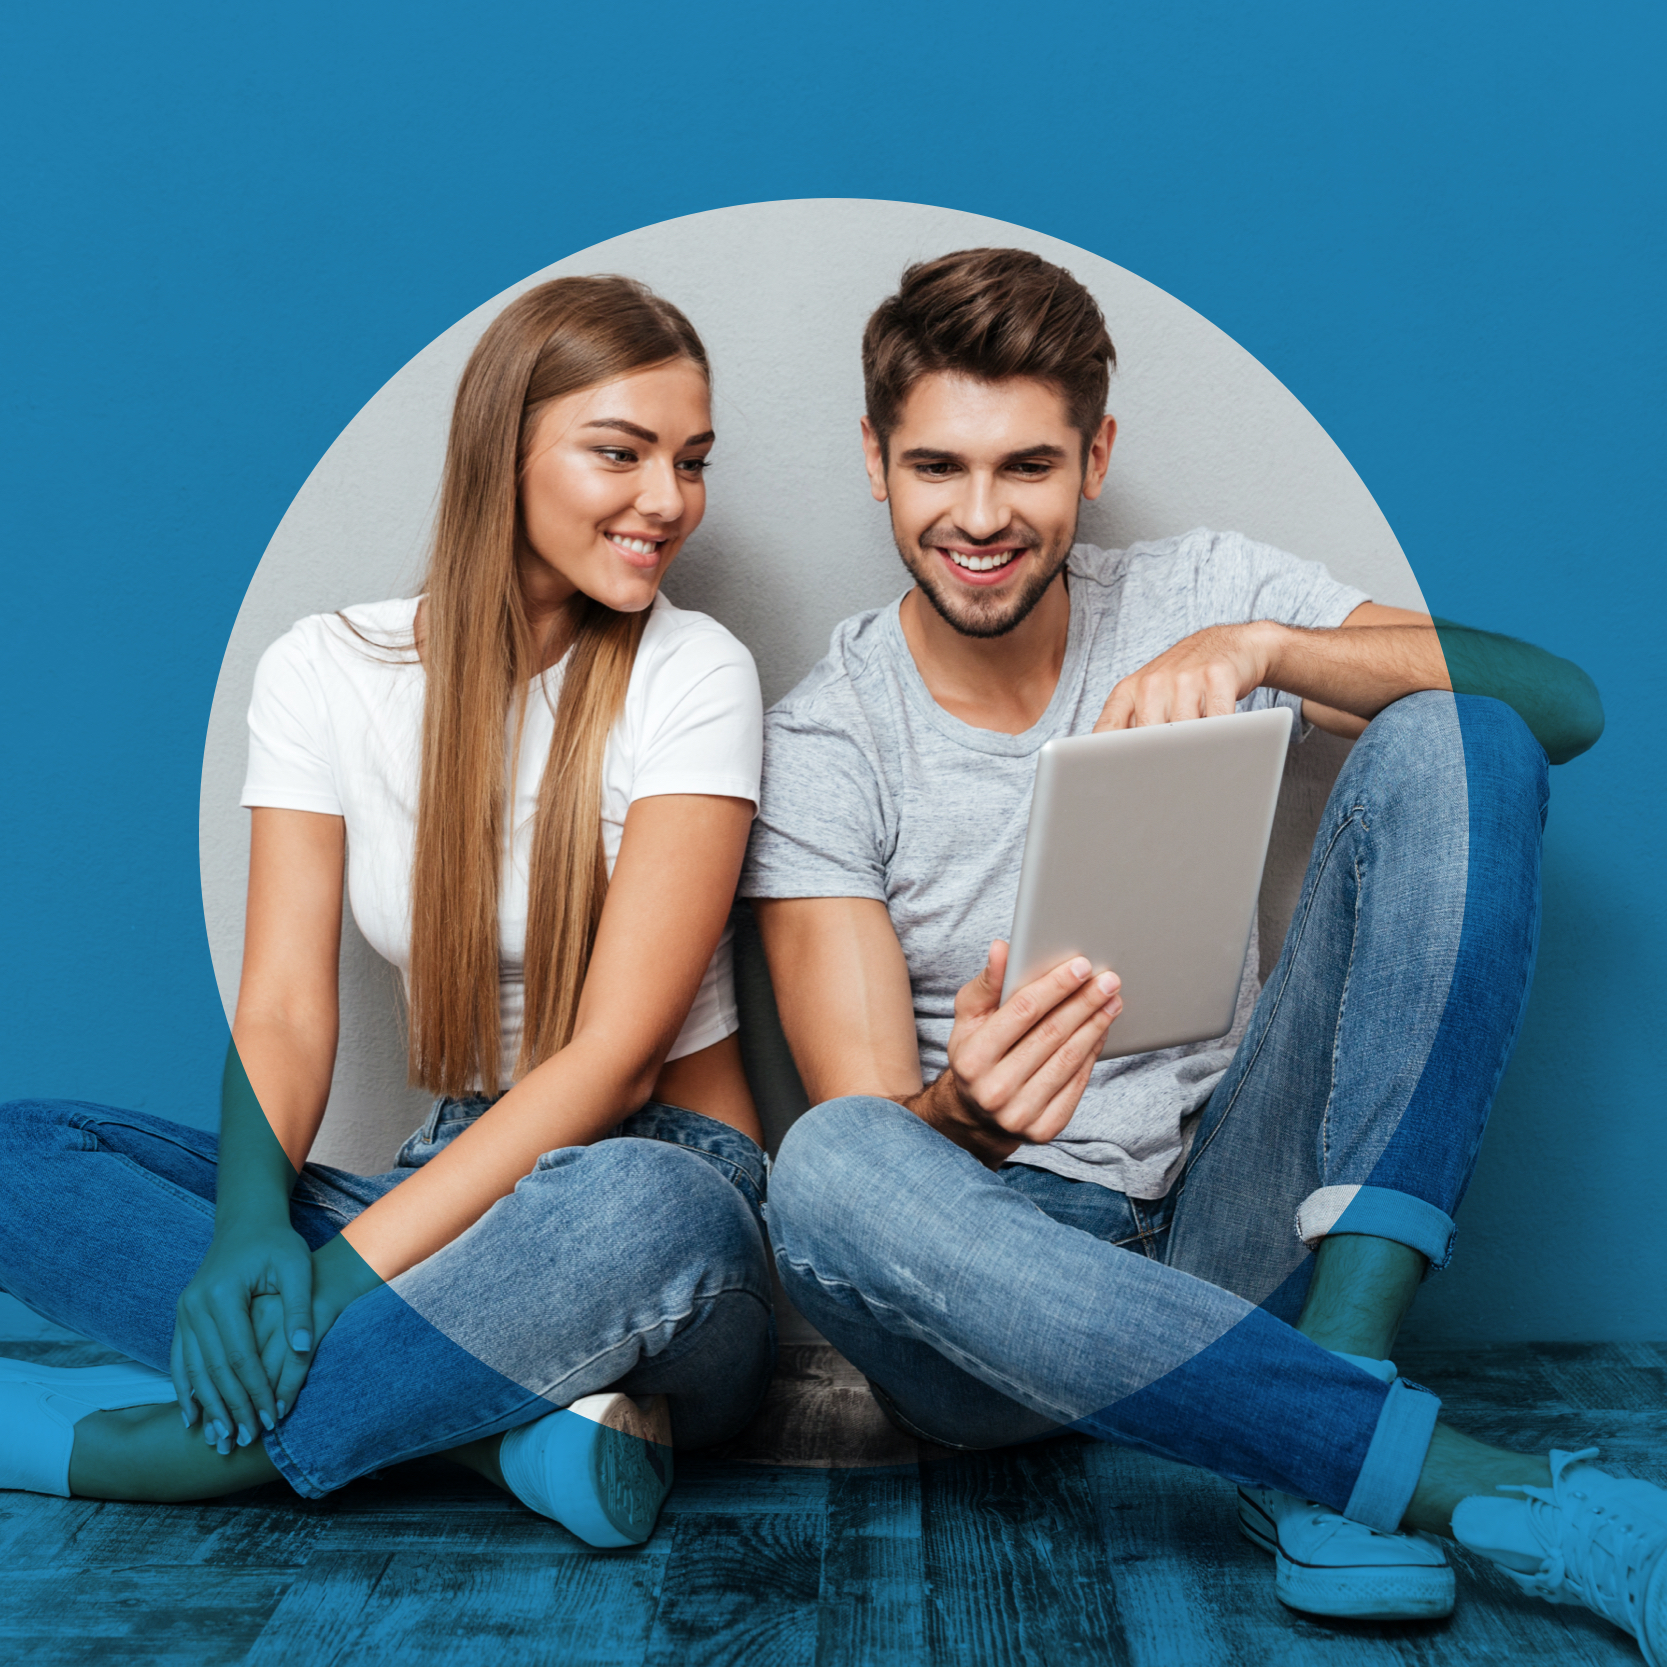 Happy couple with a tablet while girl looks in on a tablet